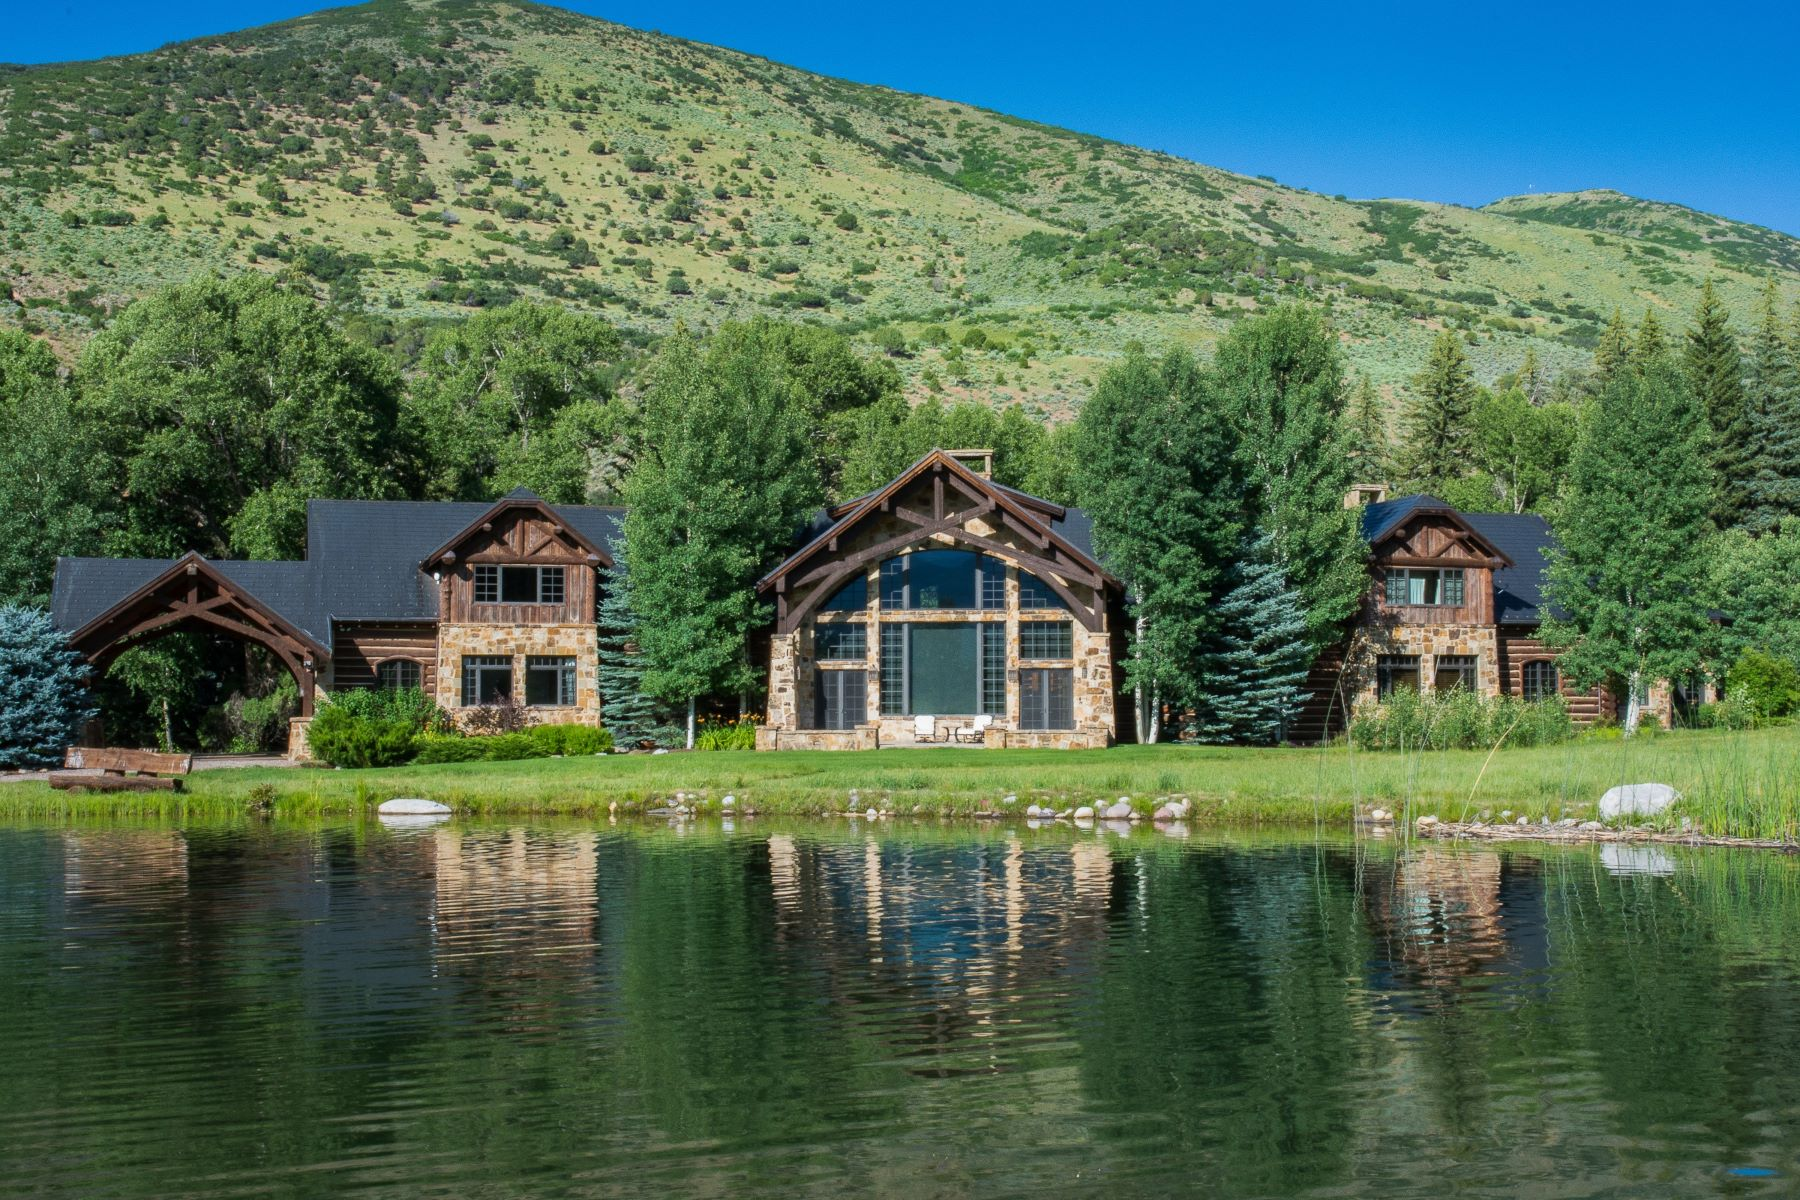 Maison unifamiliale pour l Vente à Spectacular Ranch on Snowmass Creek 2280/2288 Snowmass Creek Road Snowmass, Colorado, 81654 États-UnisDans/Autour: Aspen